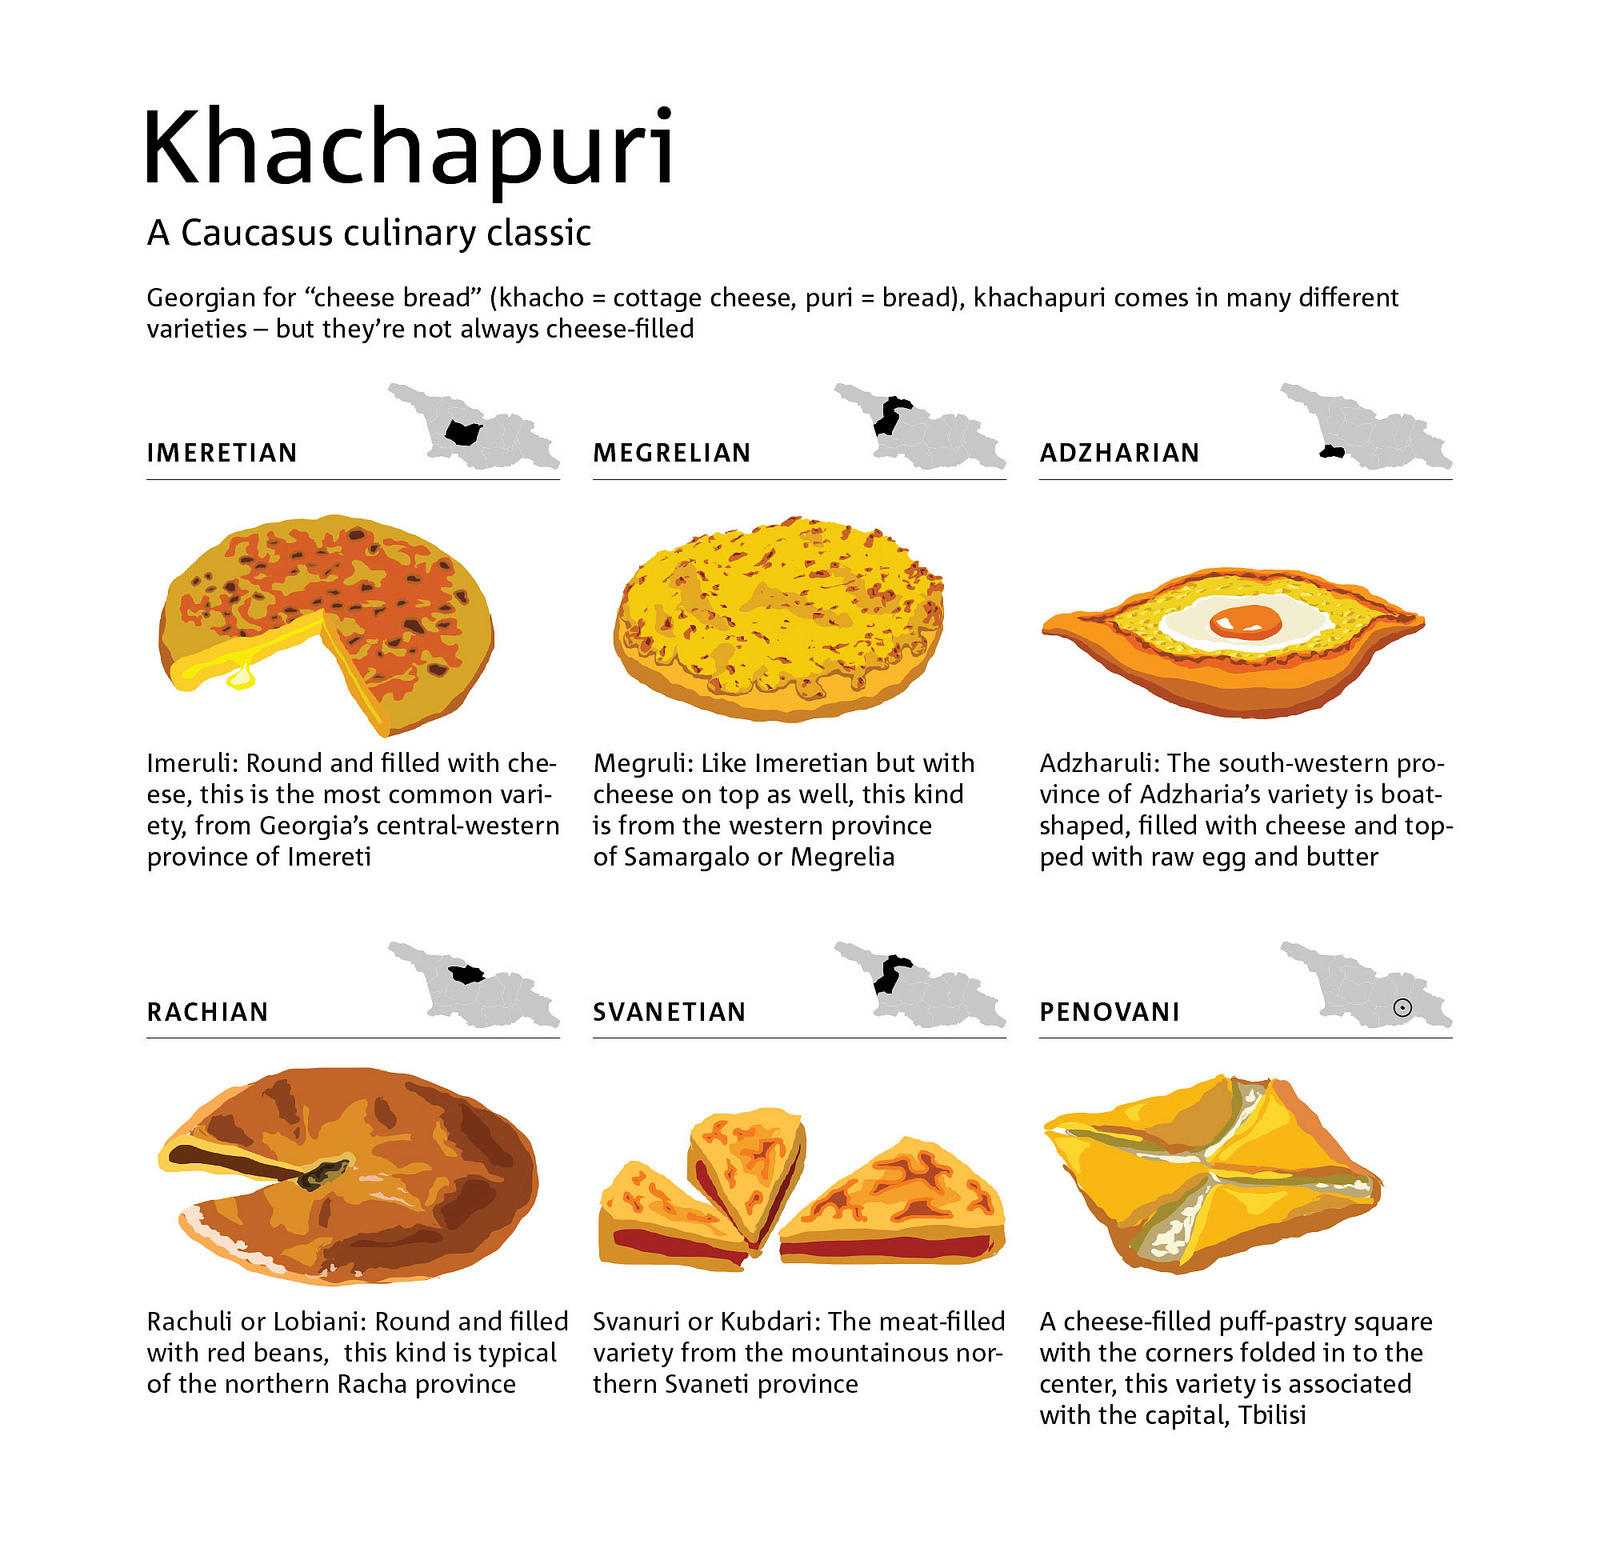 Varieties of khachapuri